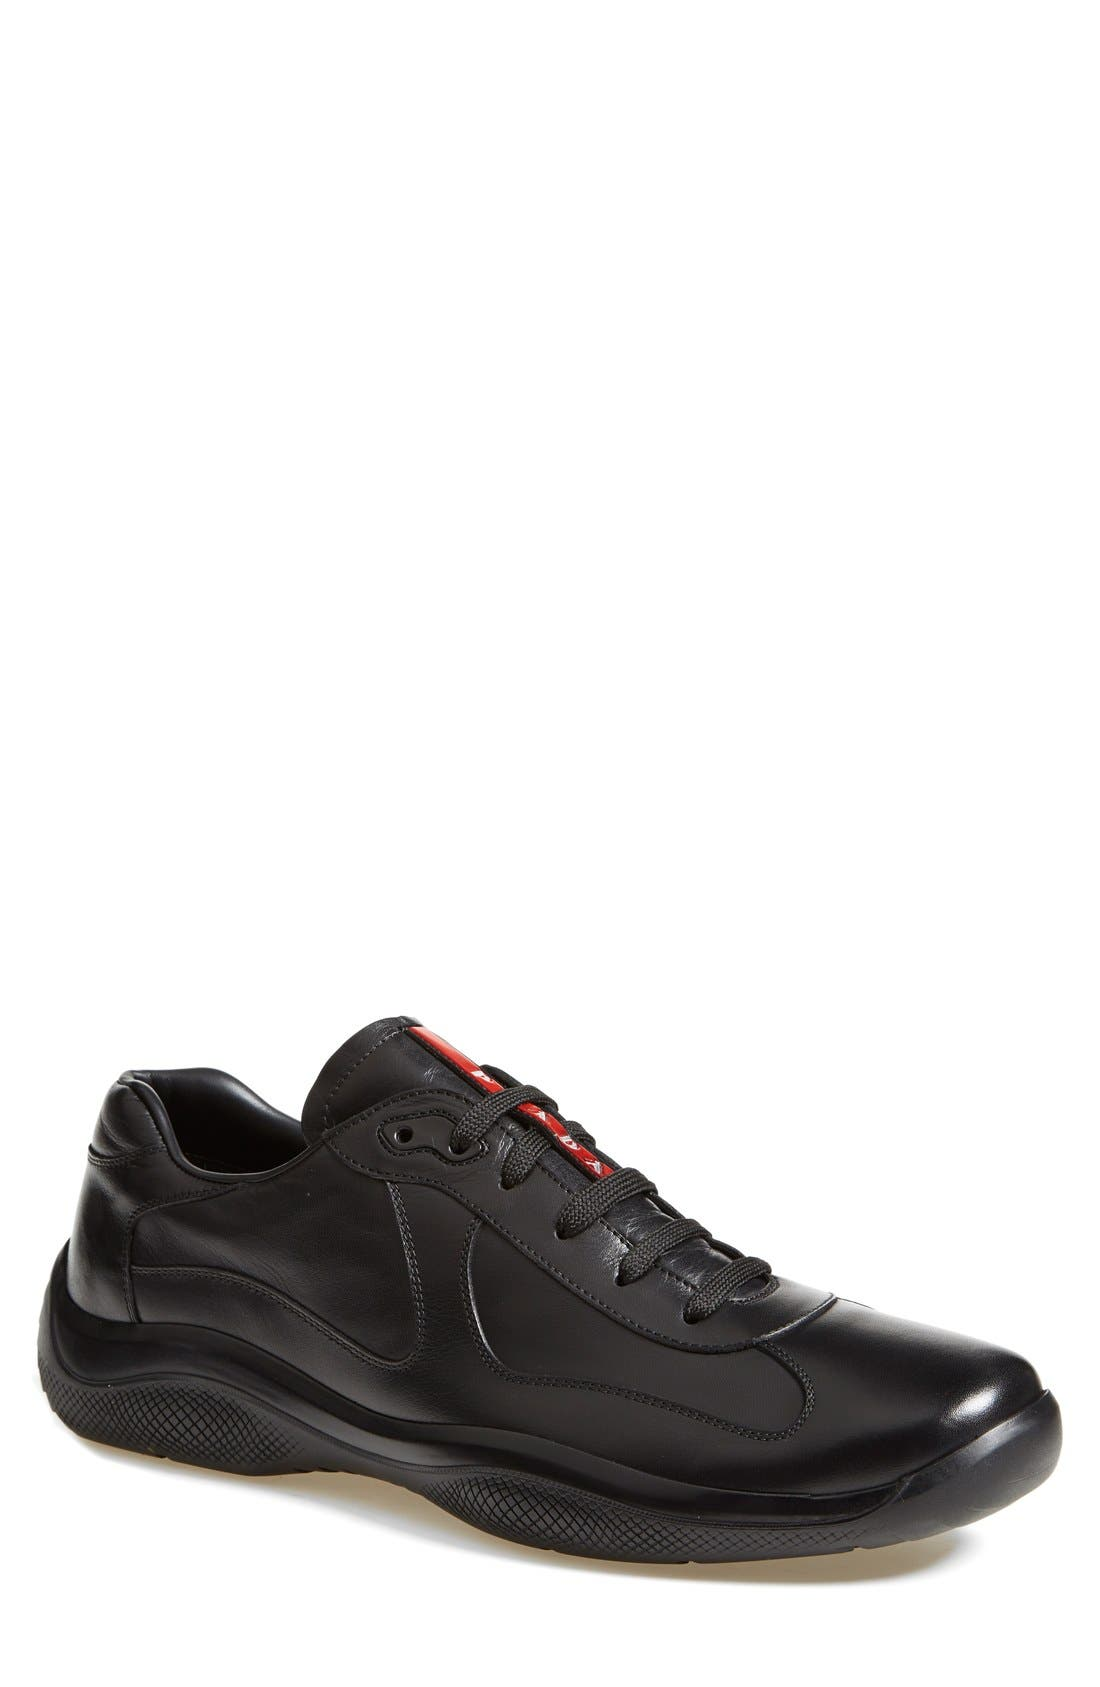 'Punta Ala' Leather Sneaker,                         Main,                         color,